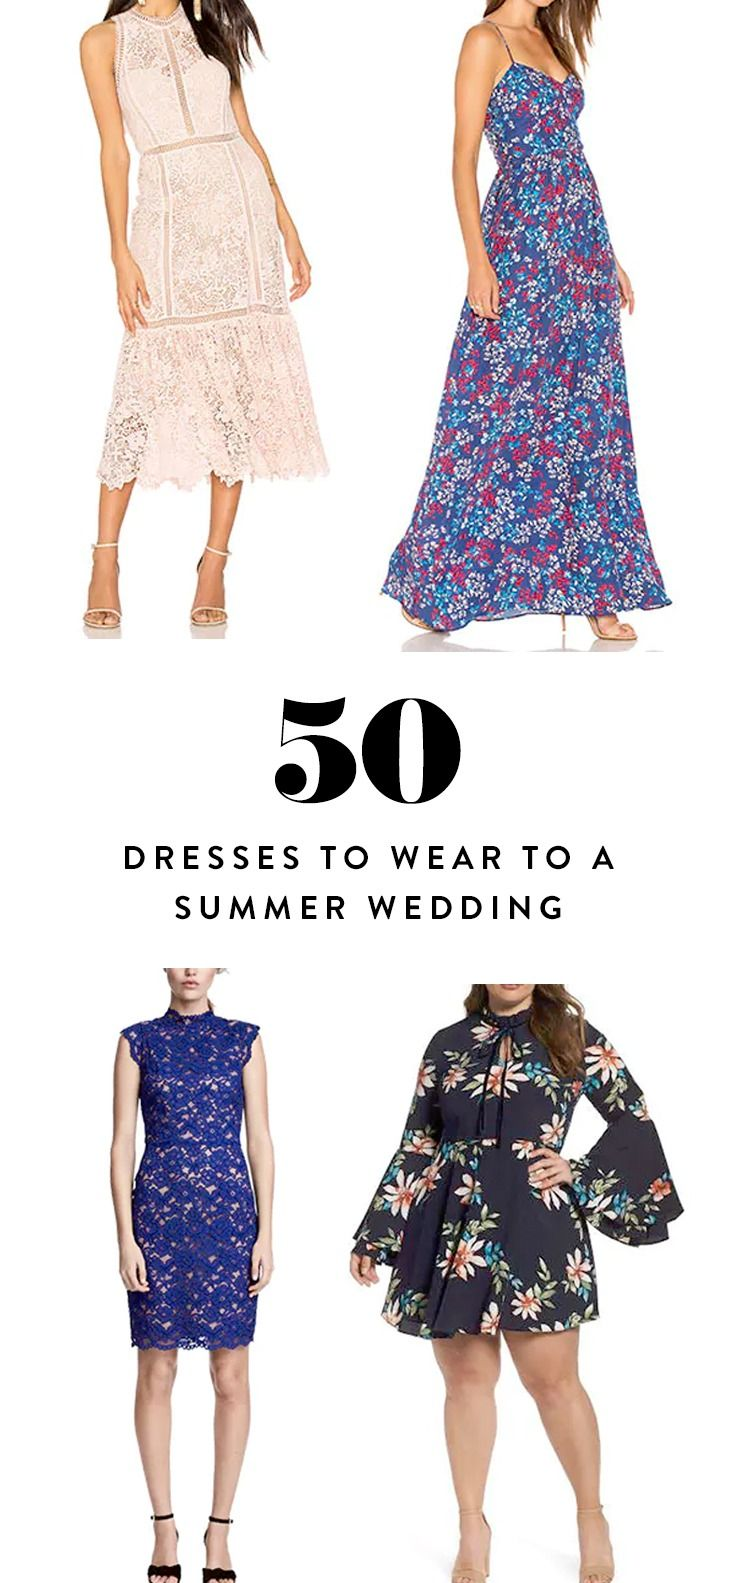 Dresses to wear to a wedding as a guest over 50   Dresses to Wear to a Summer Wedding  Wedding guest dresses